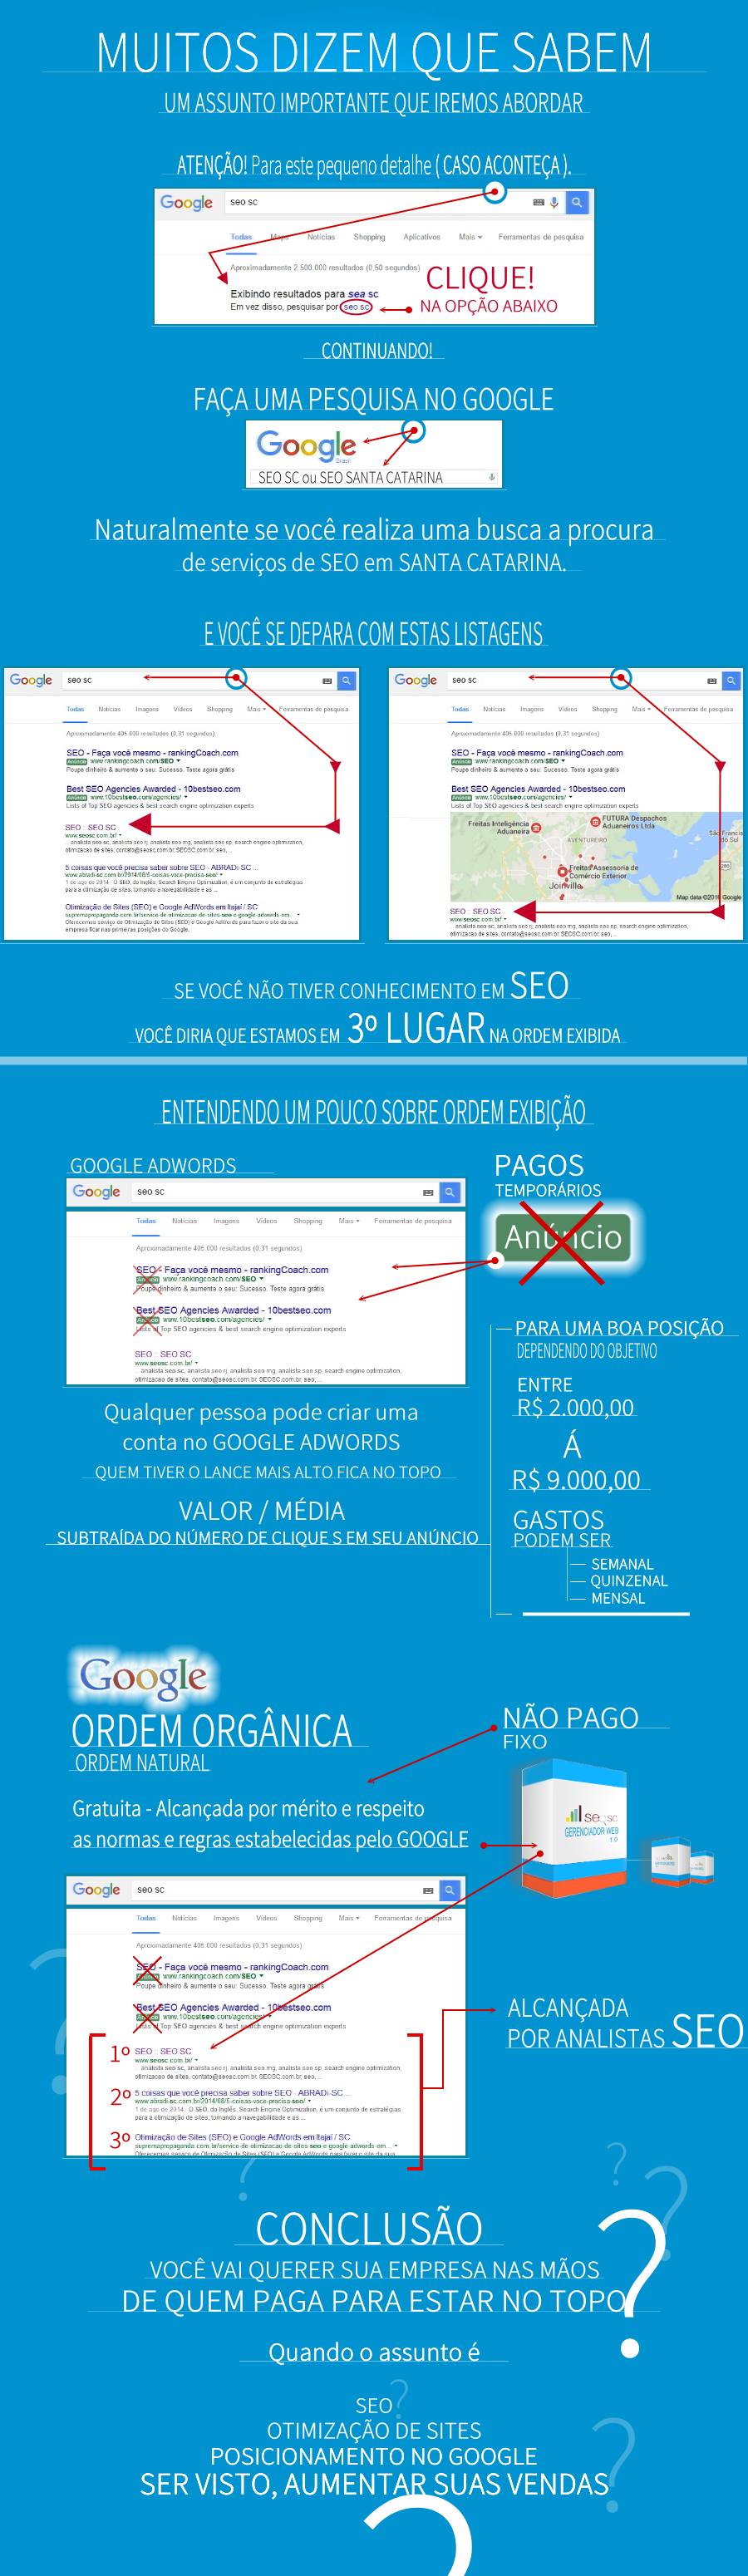 SEO-SC-SEO-OTIMIZACAO-SITES-SC-Software WEB 1.0